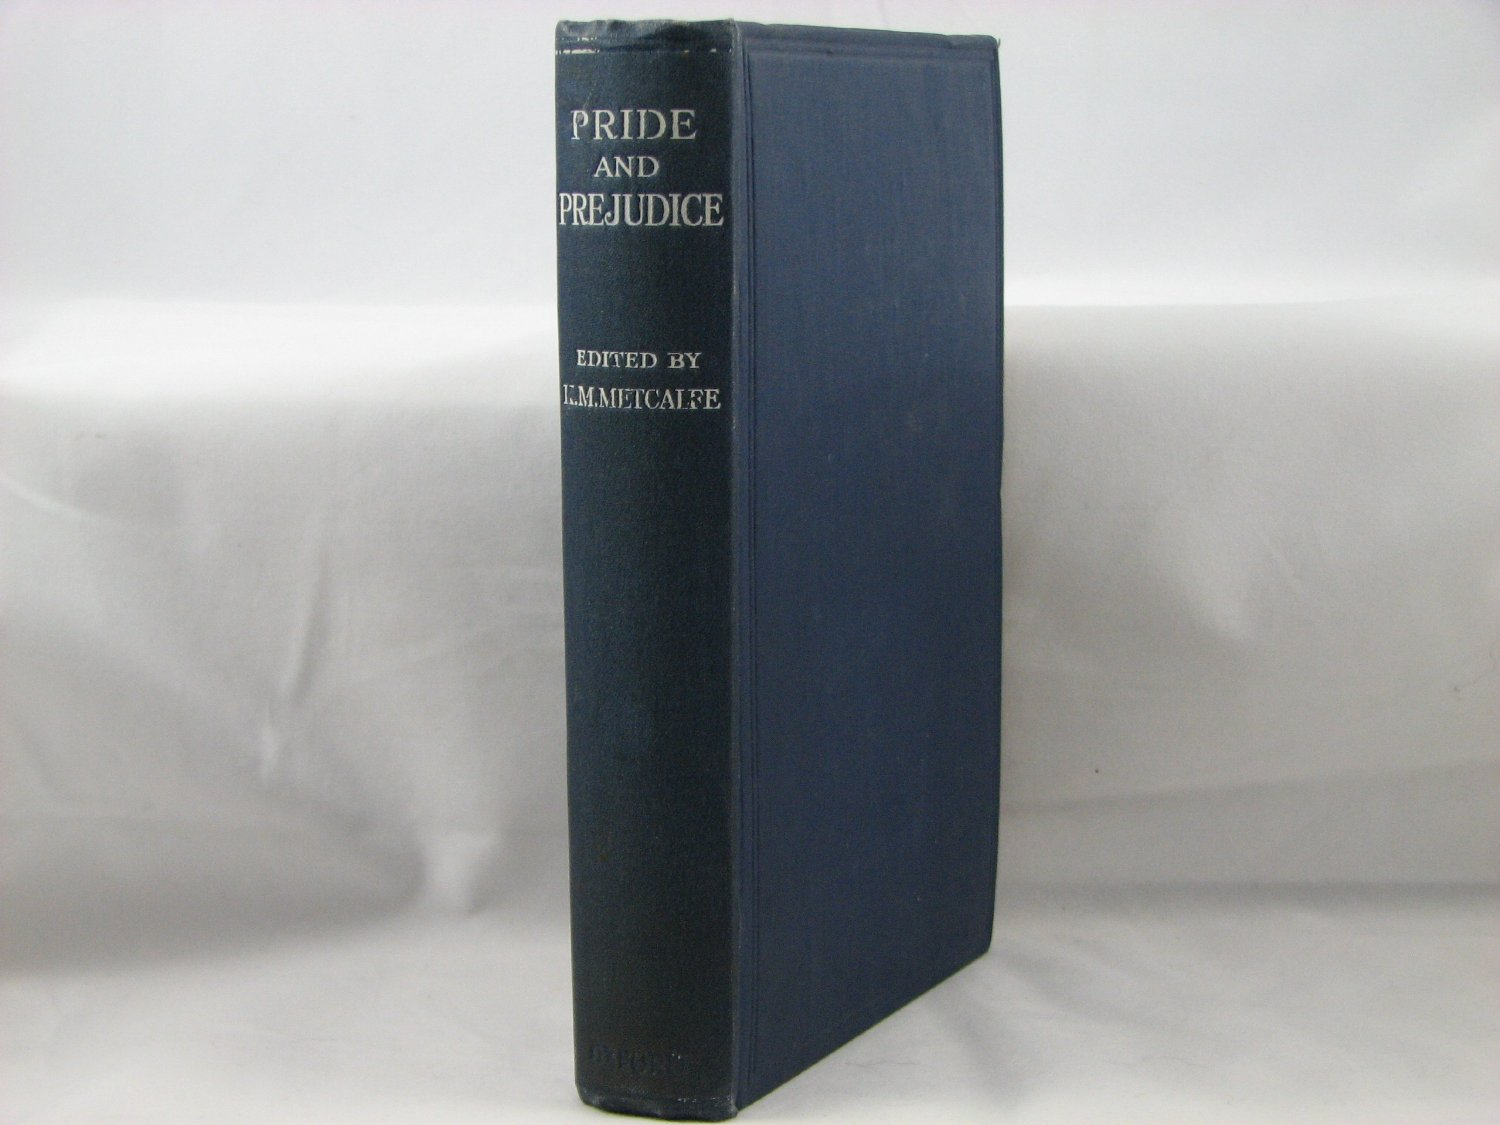 pride and prejudice jane austen in vermont pride and prejudice ed k m metcalfe oxford 1912